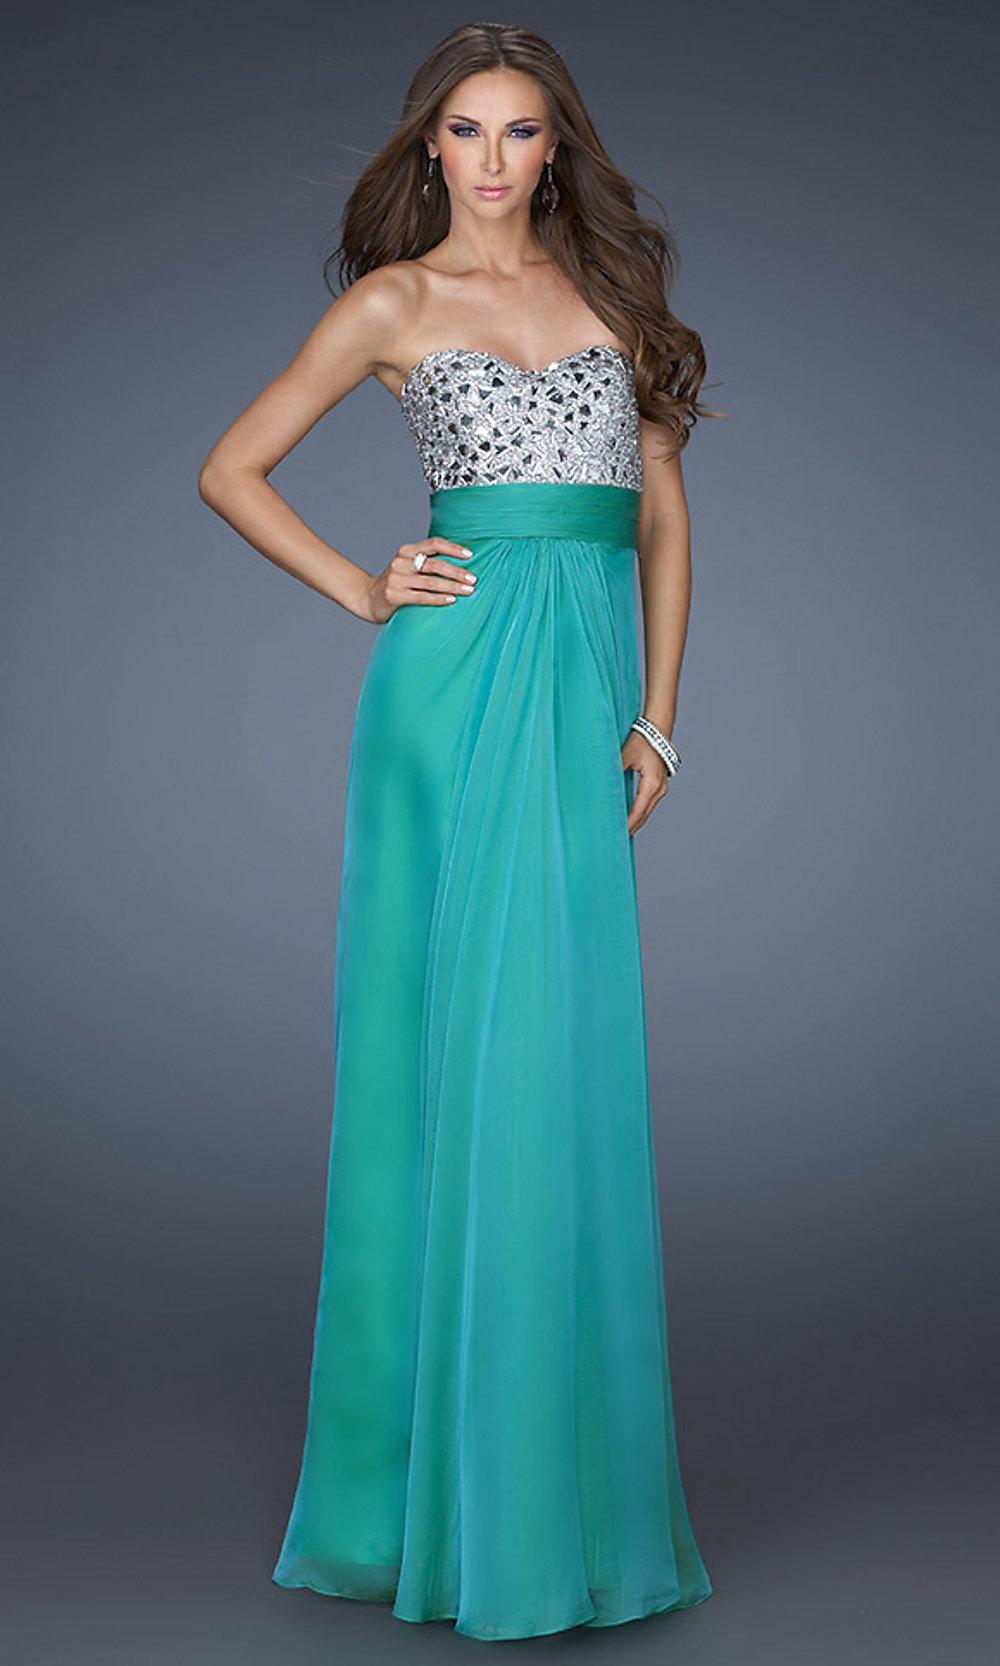 La Femme 23920 - Sweetheart Strapless Long Ball Gown Prom